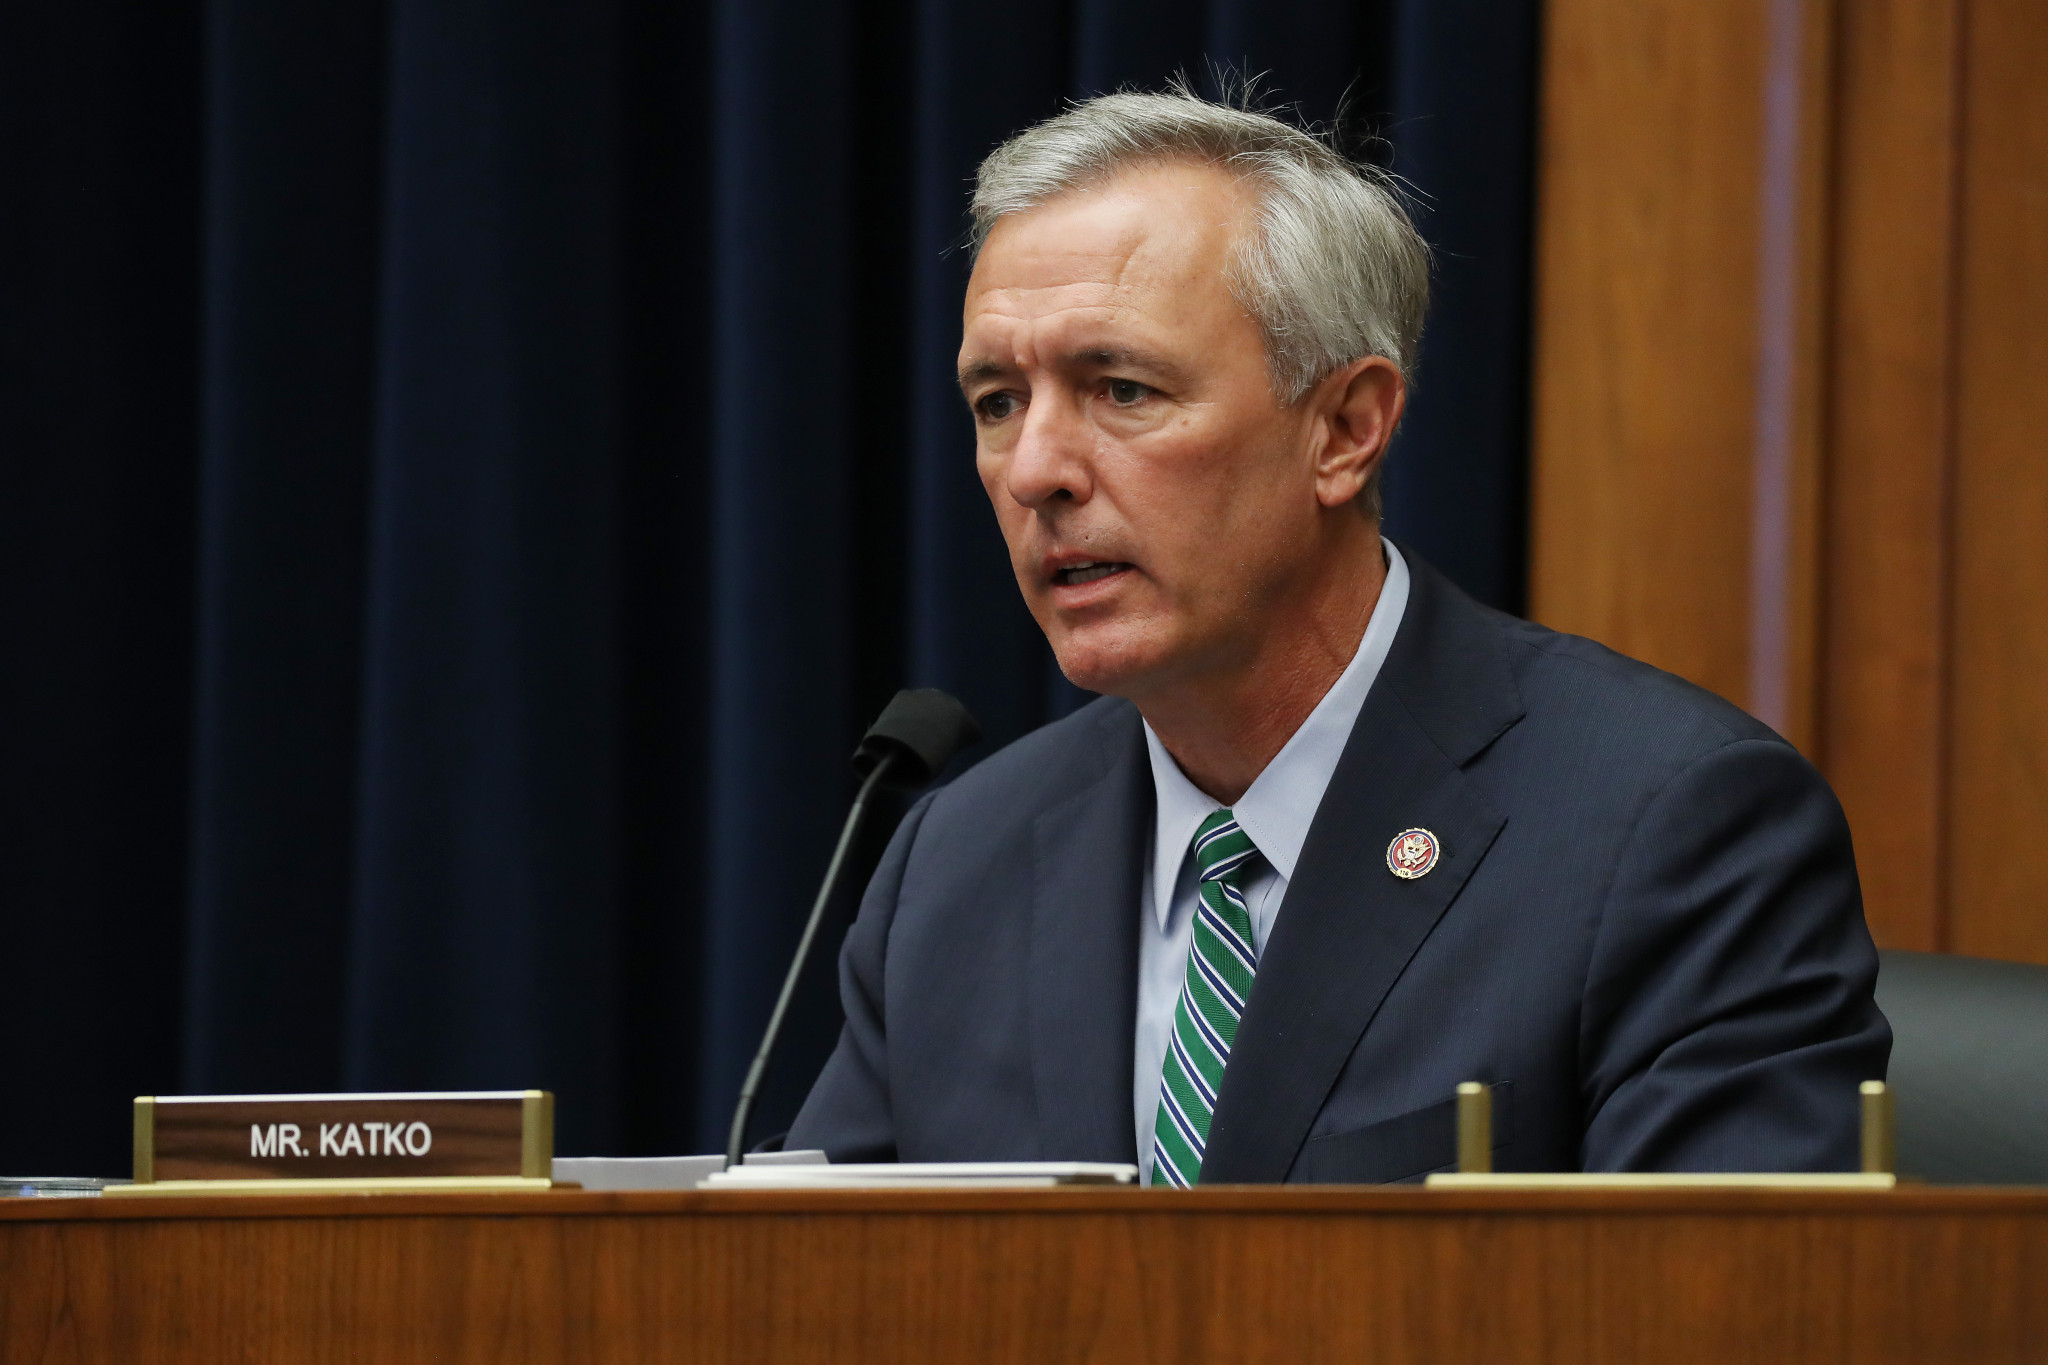 United States Representative John Katko has called for a boycott of Beijing 2022 ©Getty Images